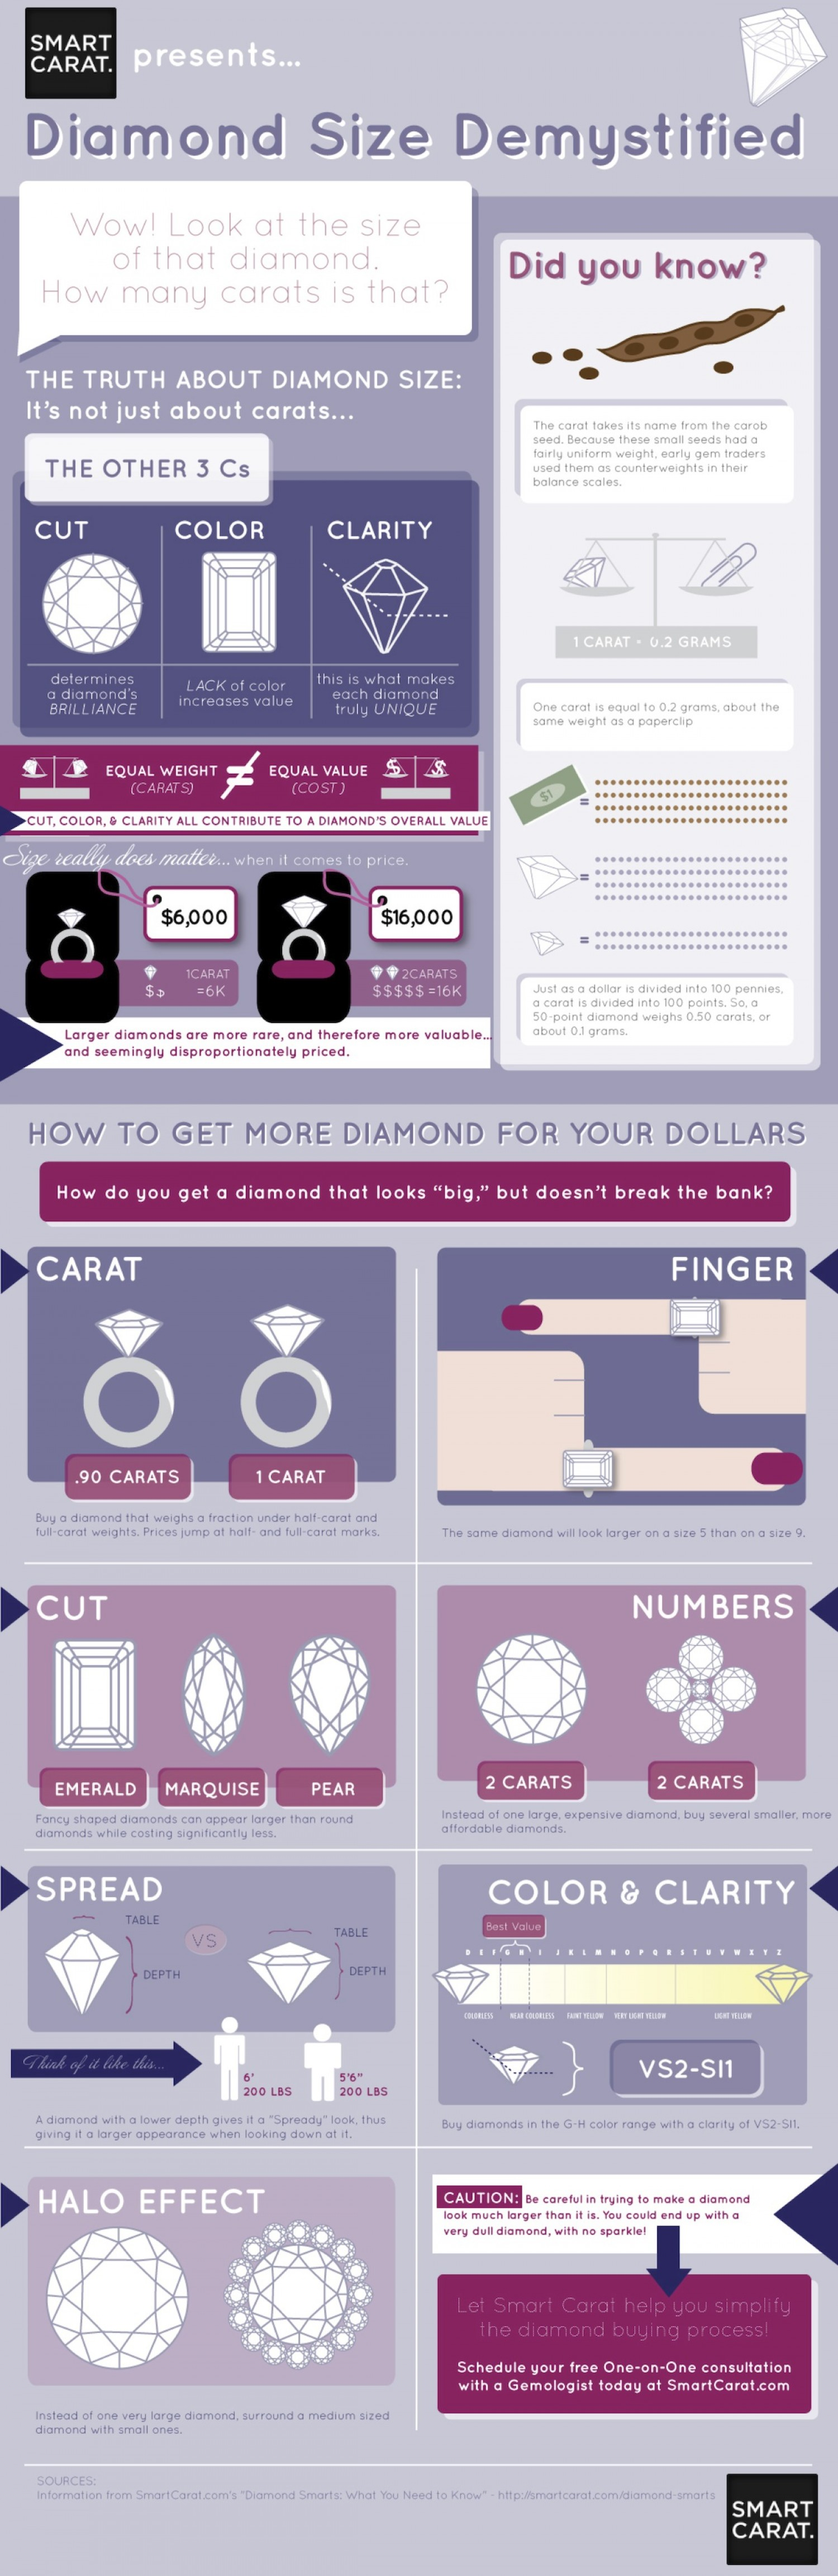 Diamond size demystified